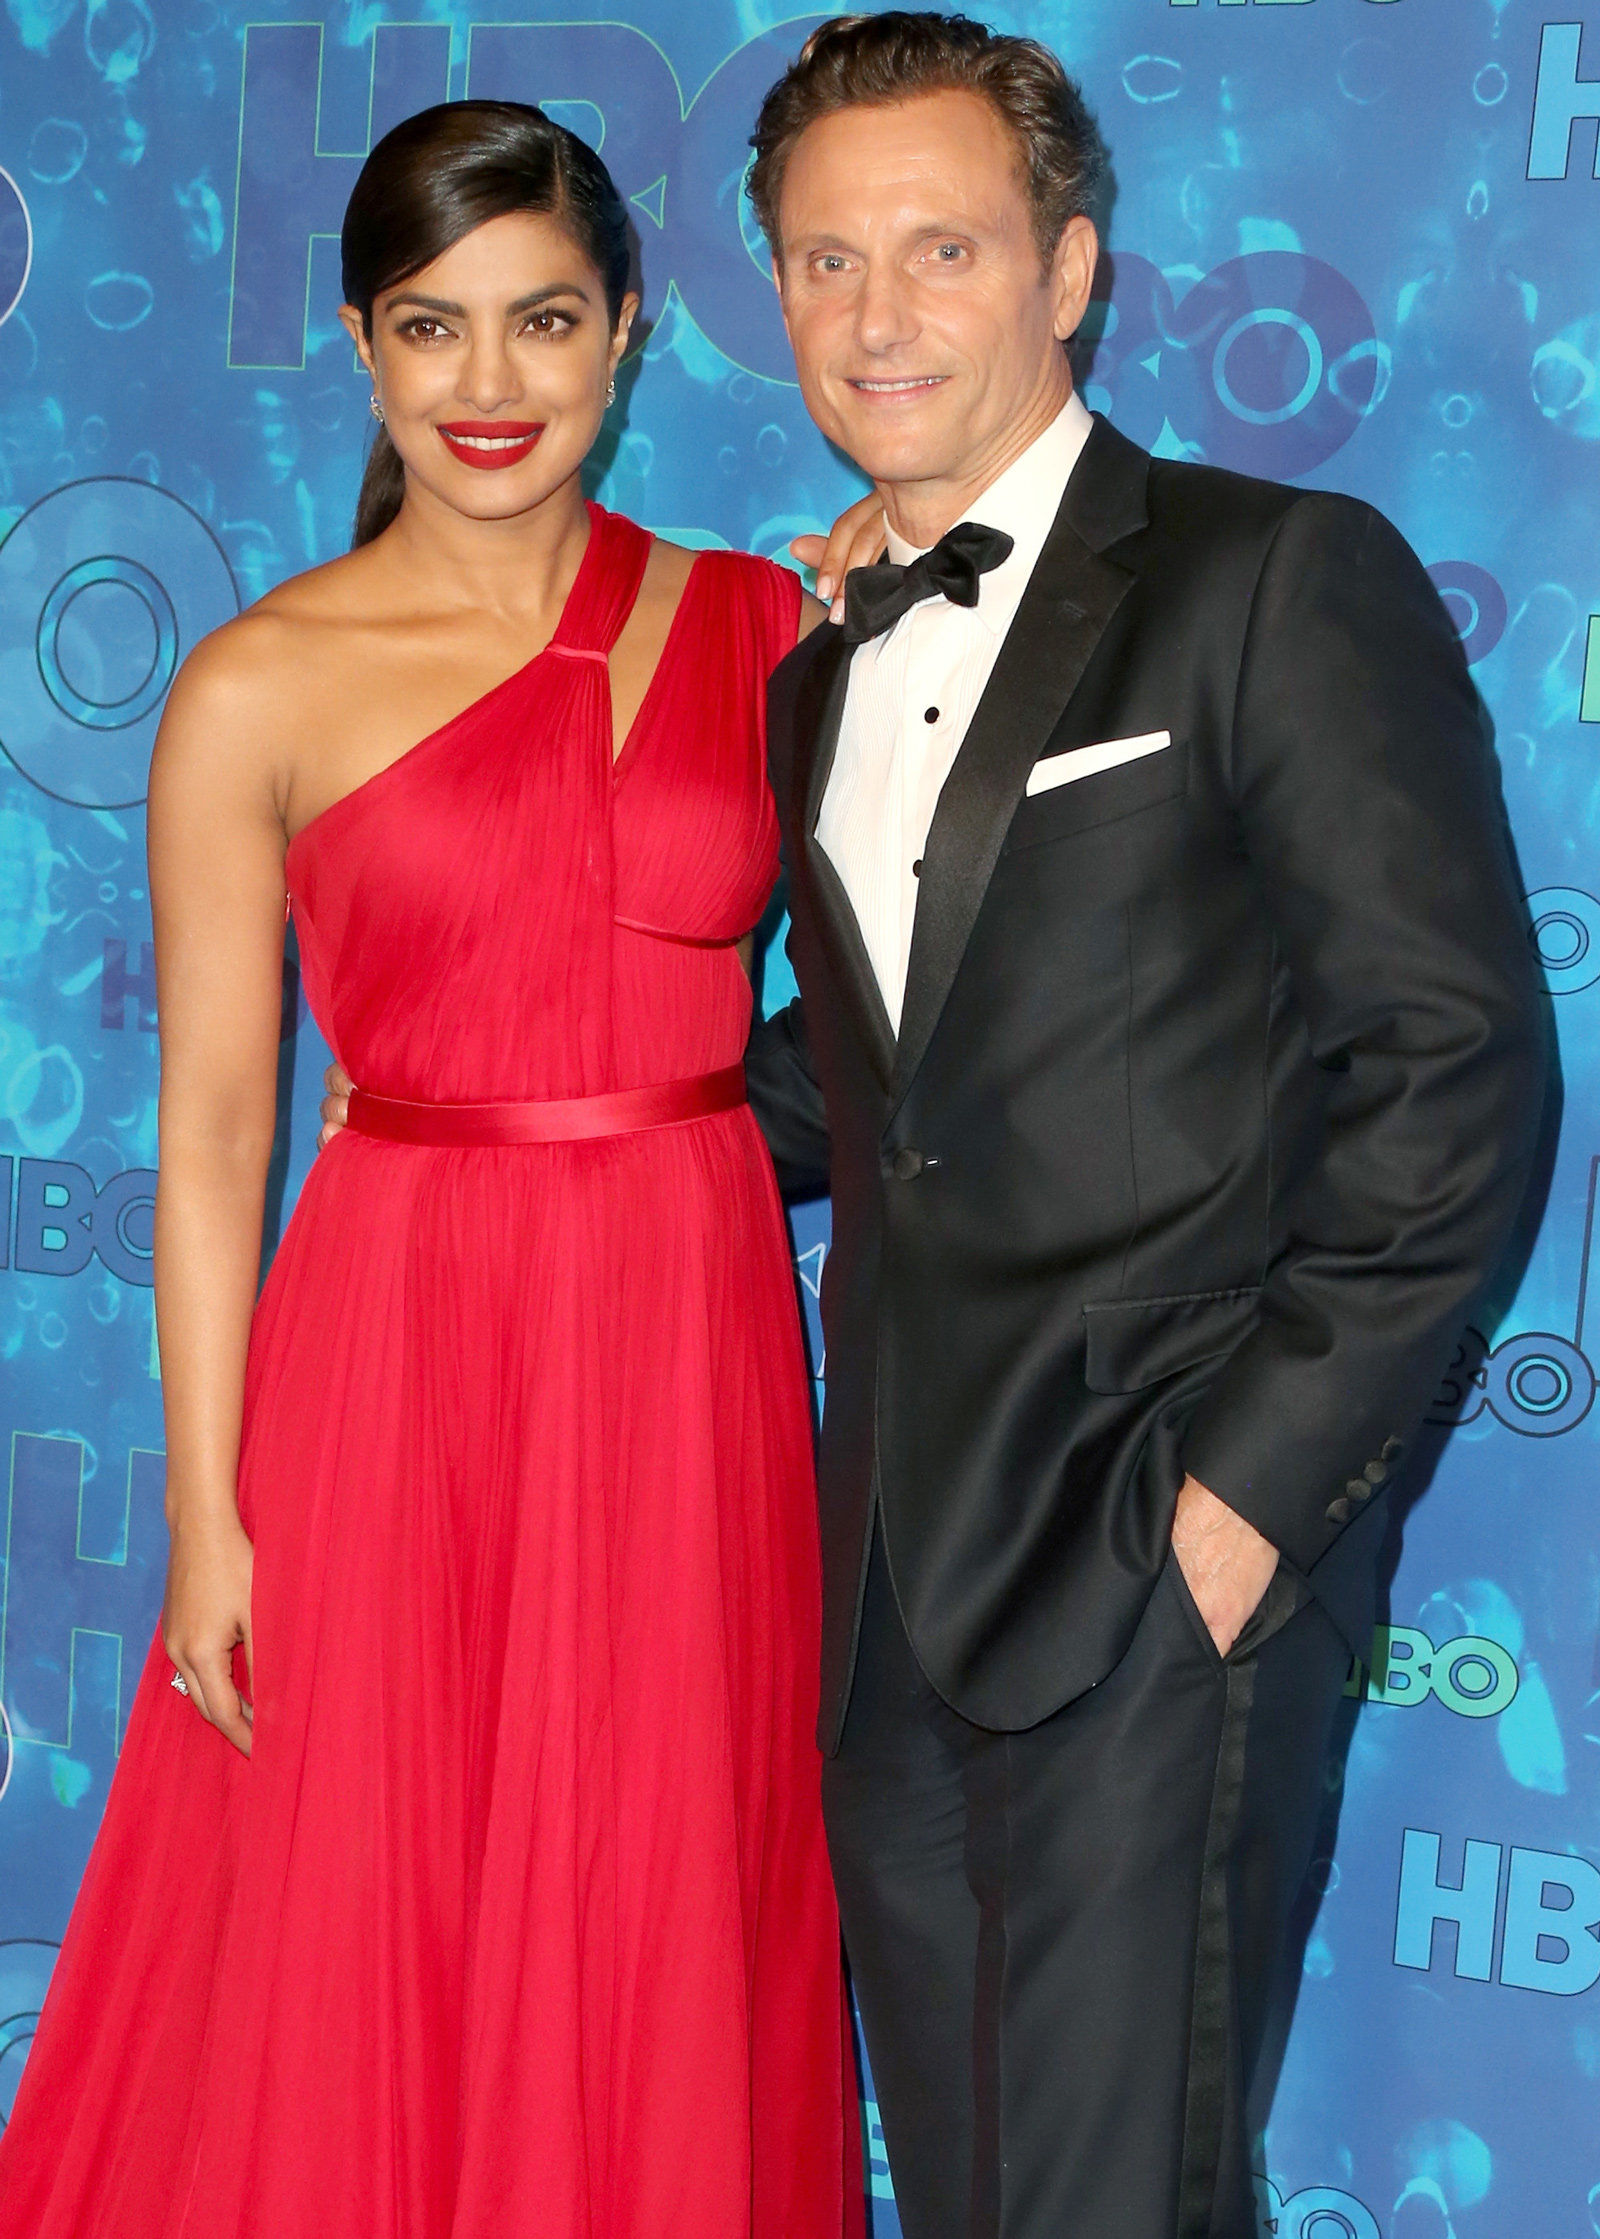 HBO Emmy Party - Priyanka and Tony